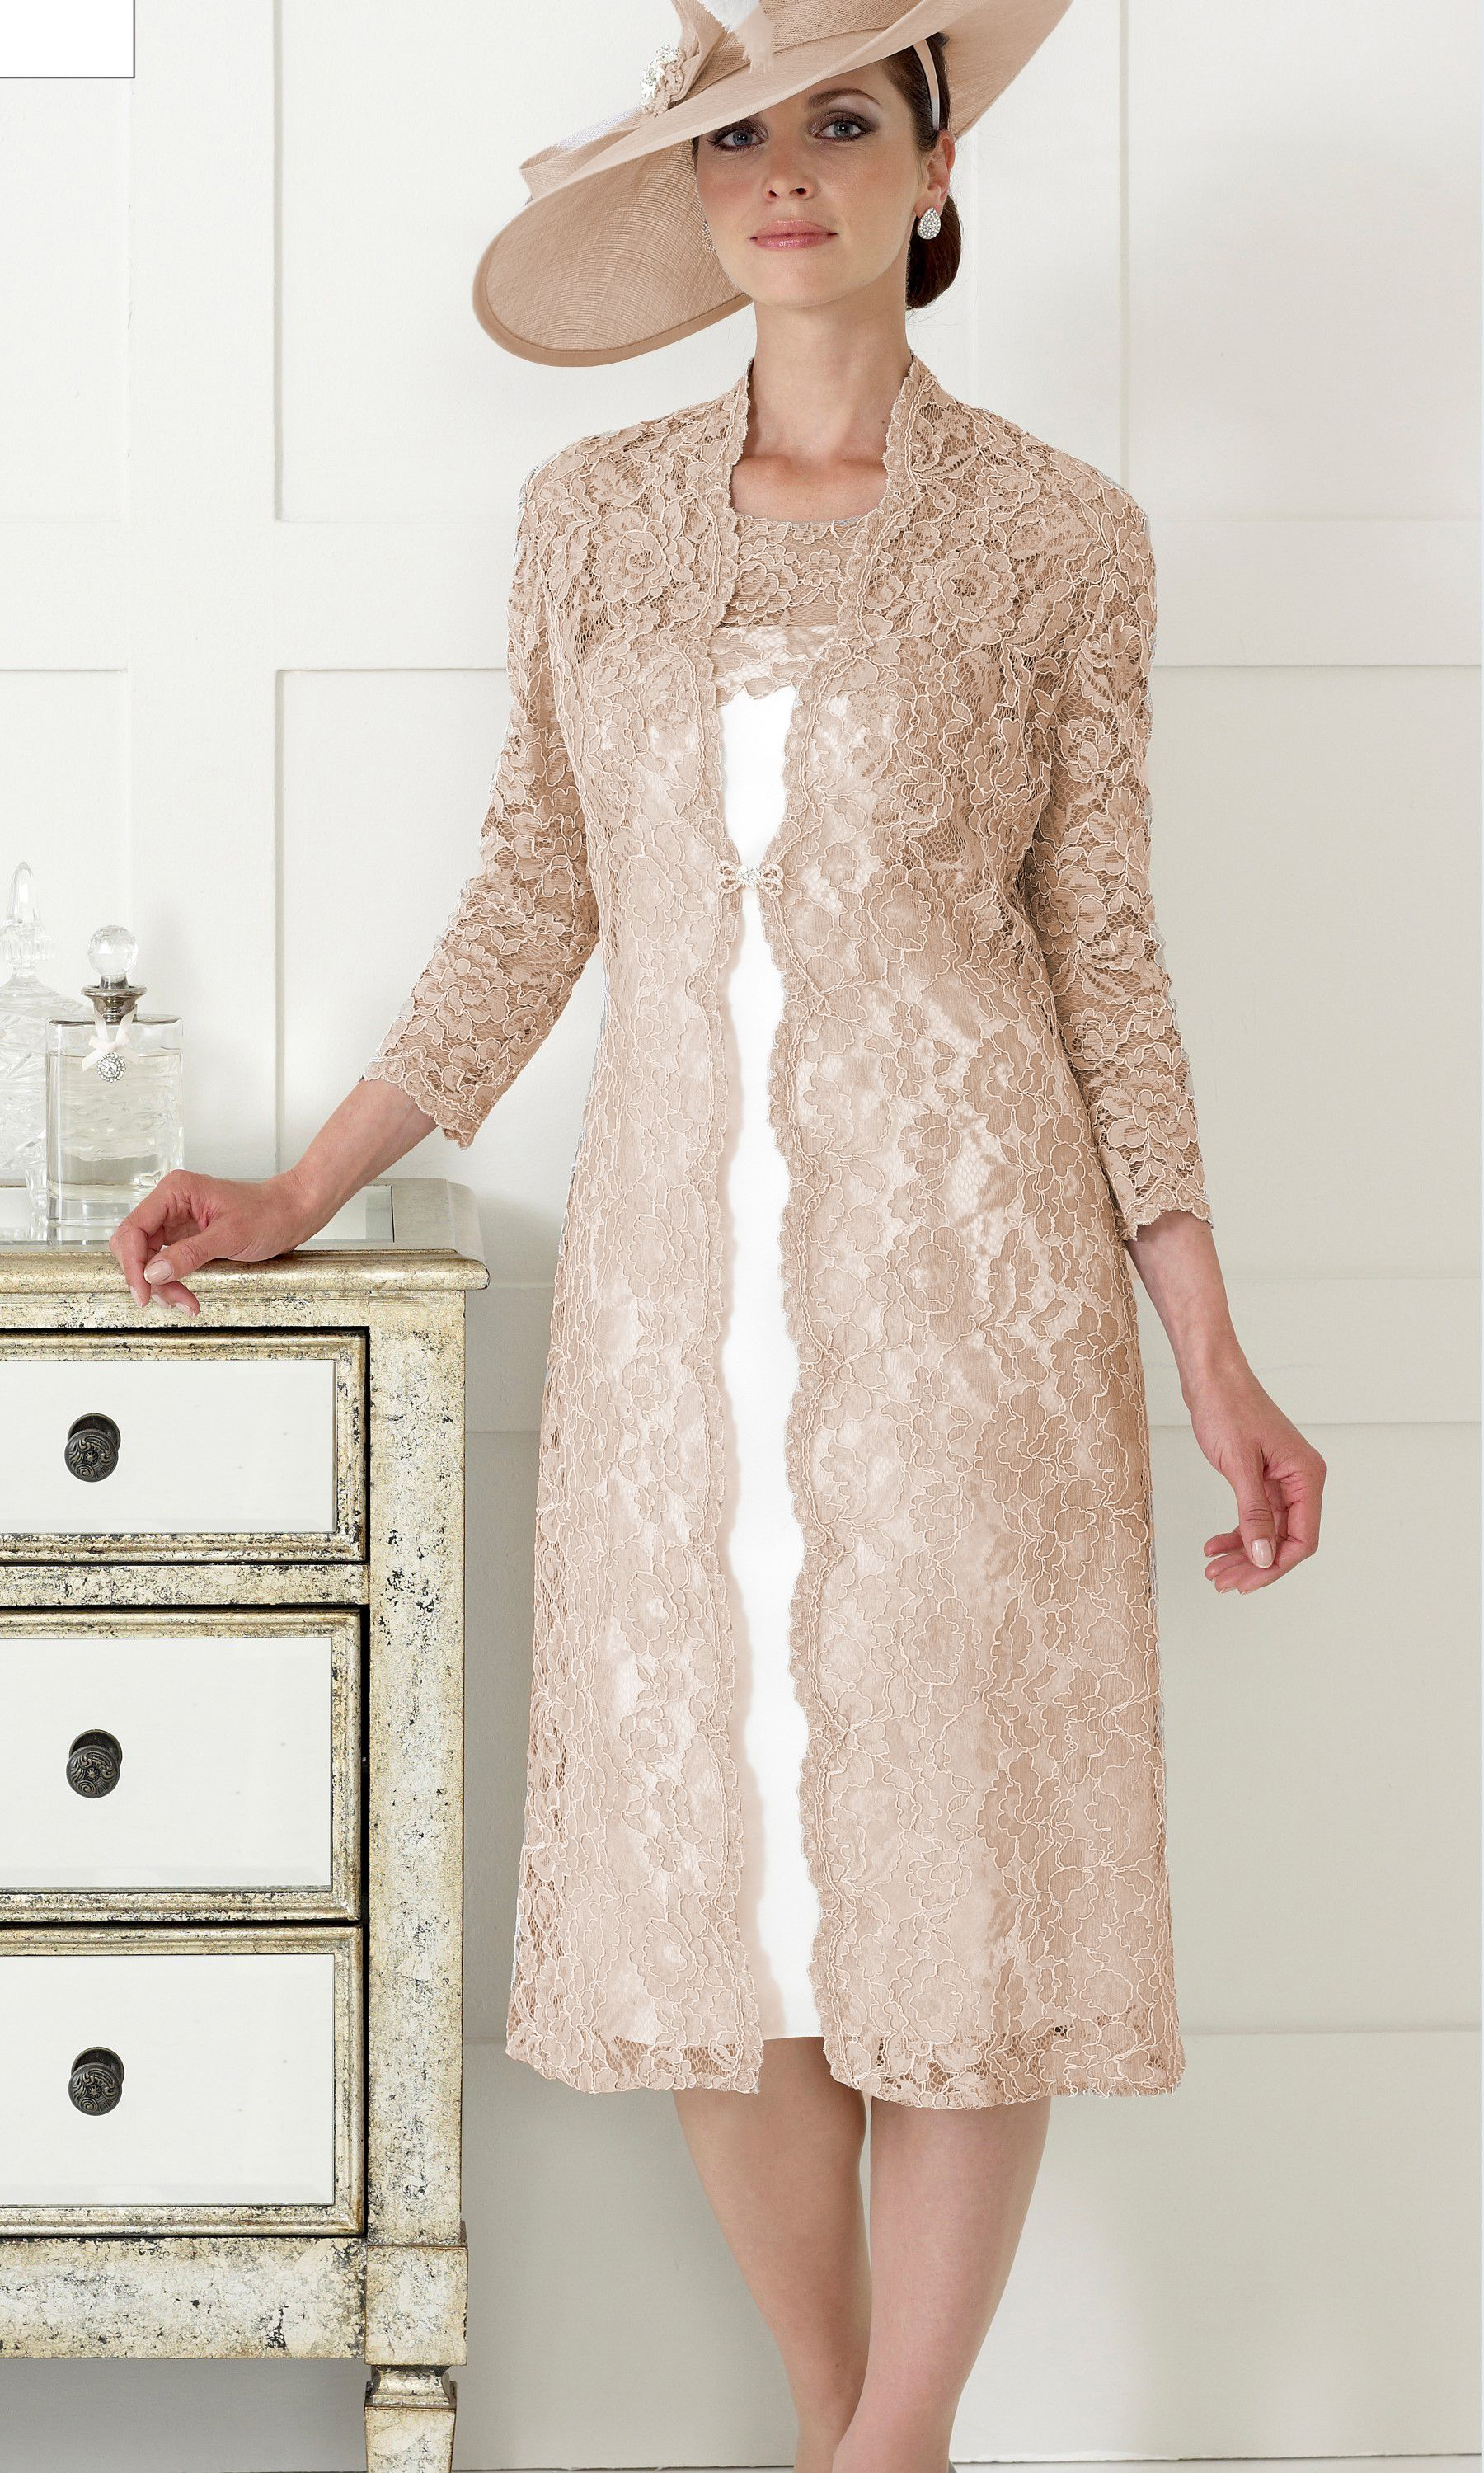 Wedding dresses for mother of the bride  Dress Code by Veromia  Mother Of The Bride Outfits  Dorset